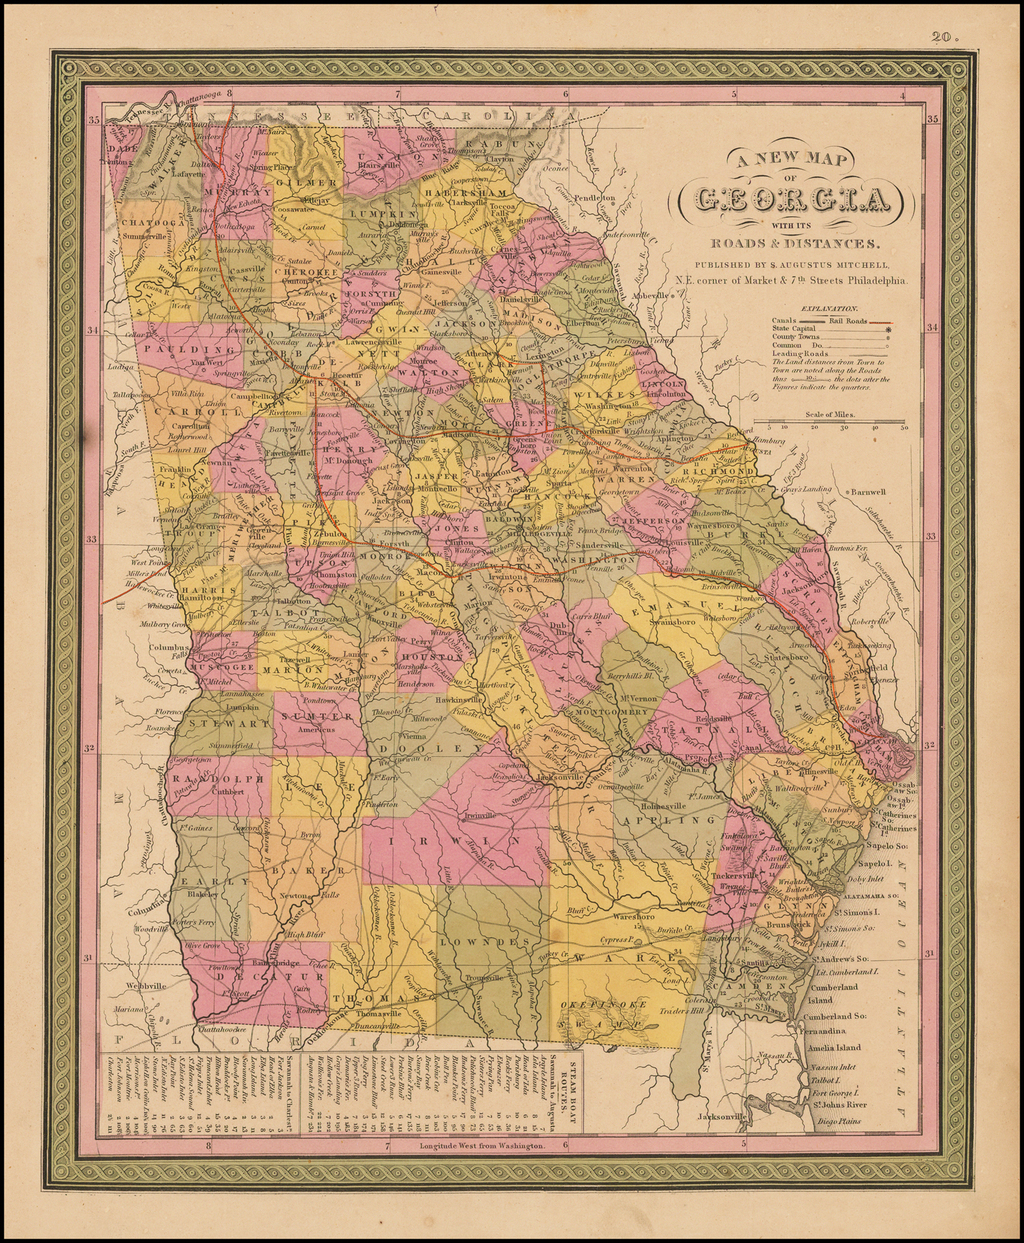 A New Map Of Georgia with its Roads & Distances . . . 1847 By Samuel Augustus Mitchell